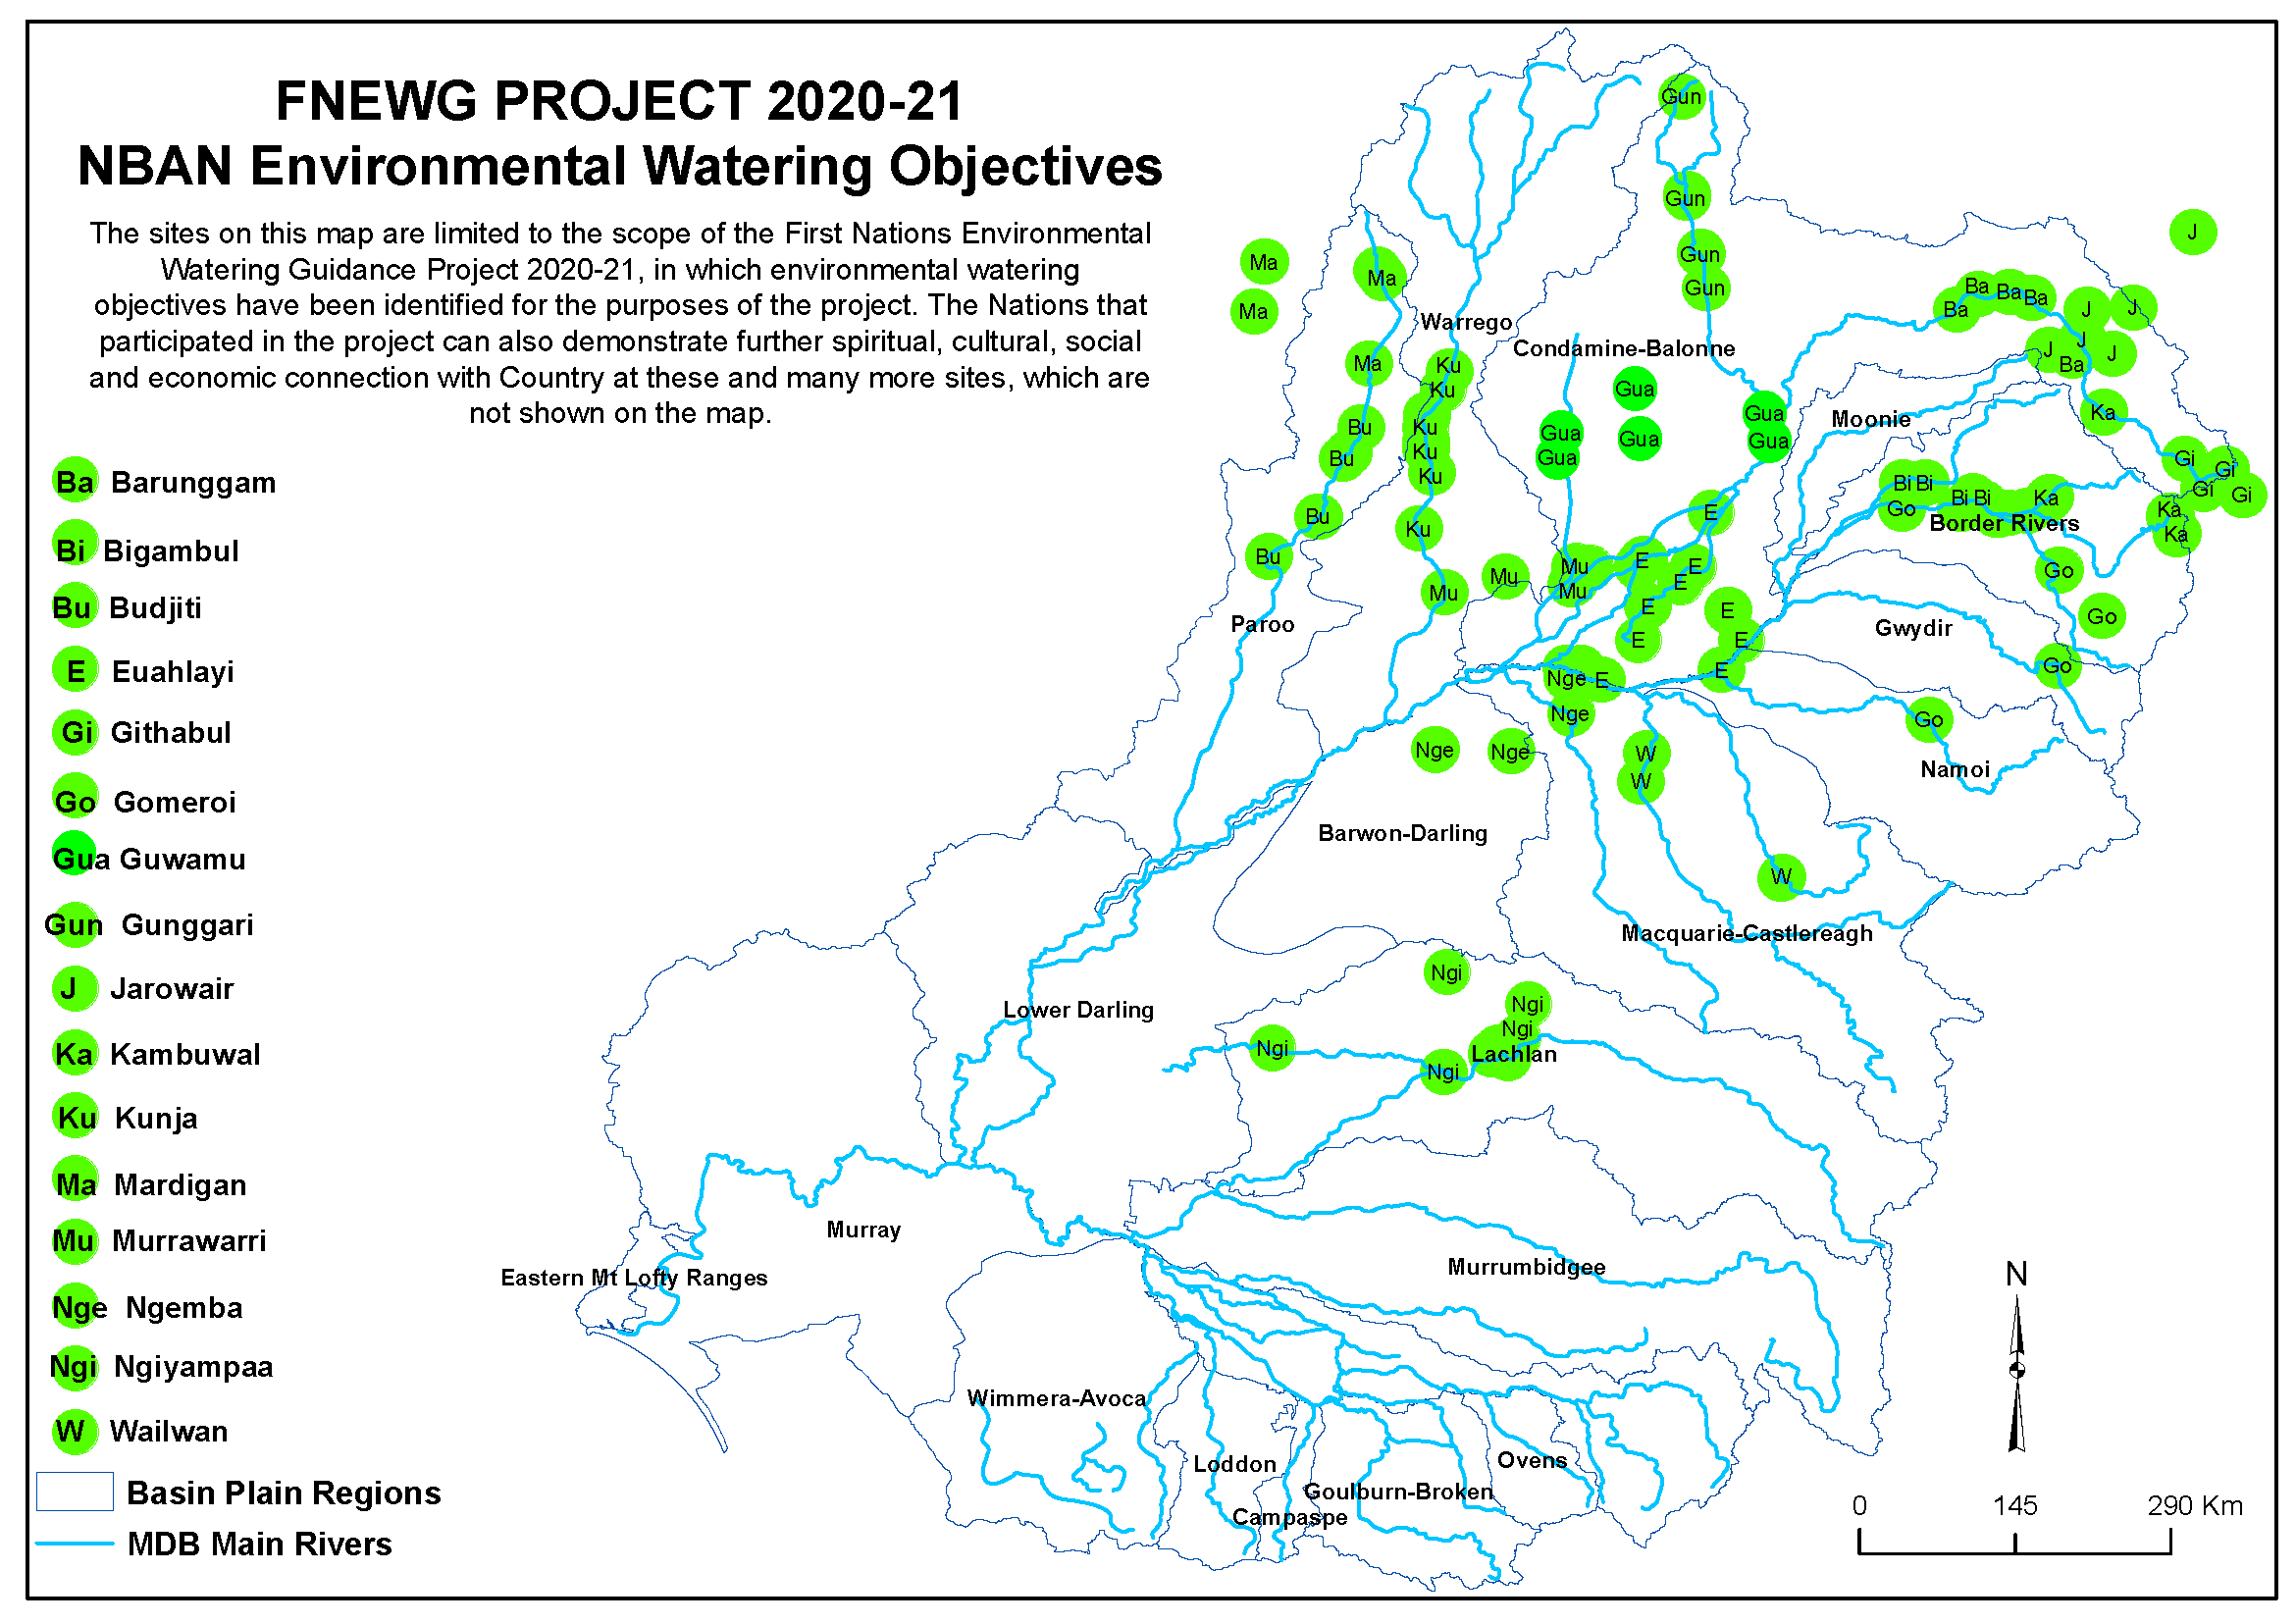 NBAN Environmental Watering Objectives Map